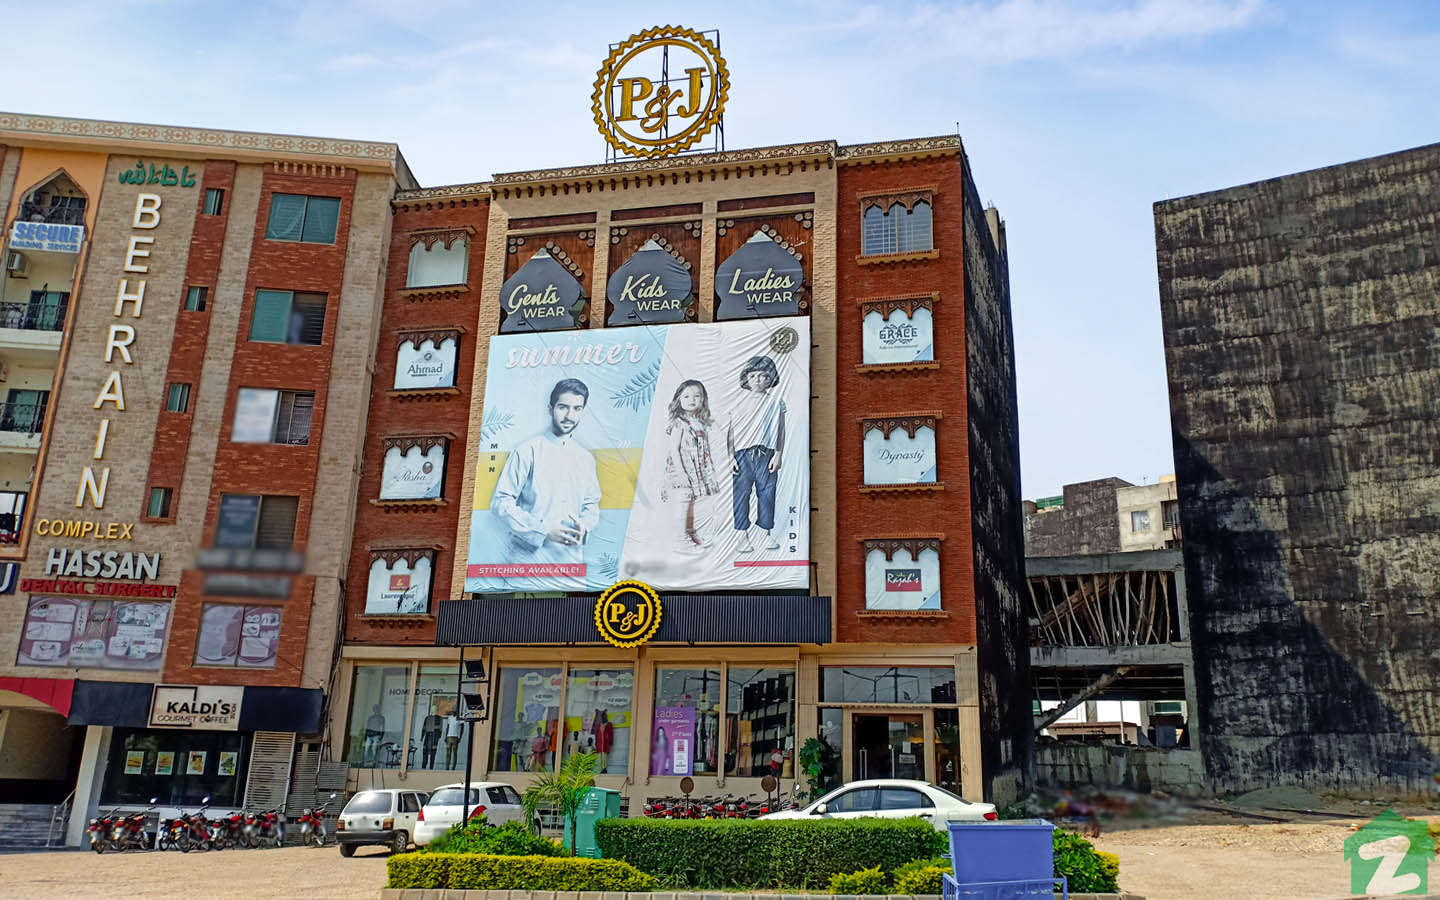 P&J Emporium Mall offers several retail outlets under one roof